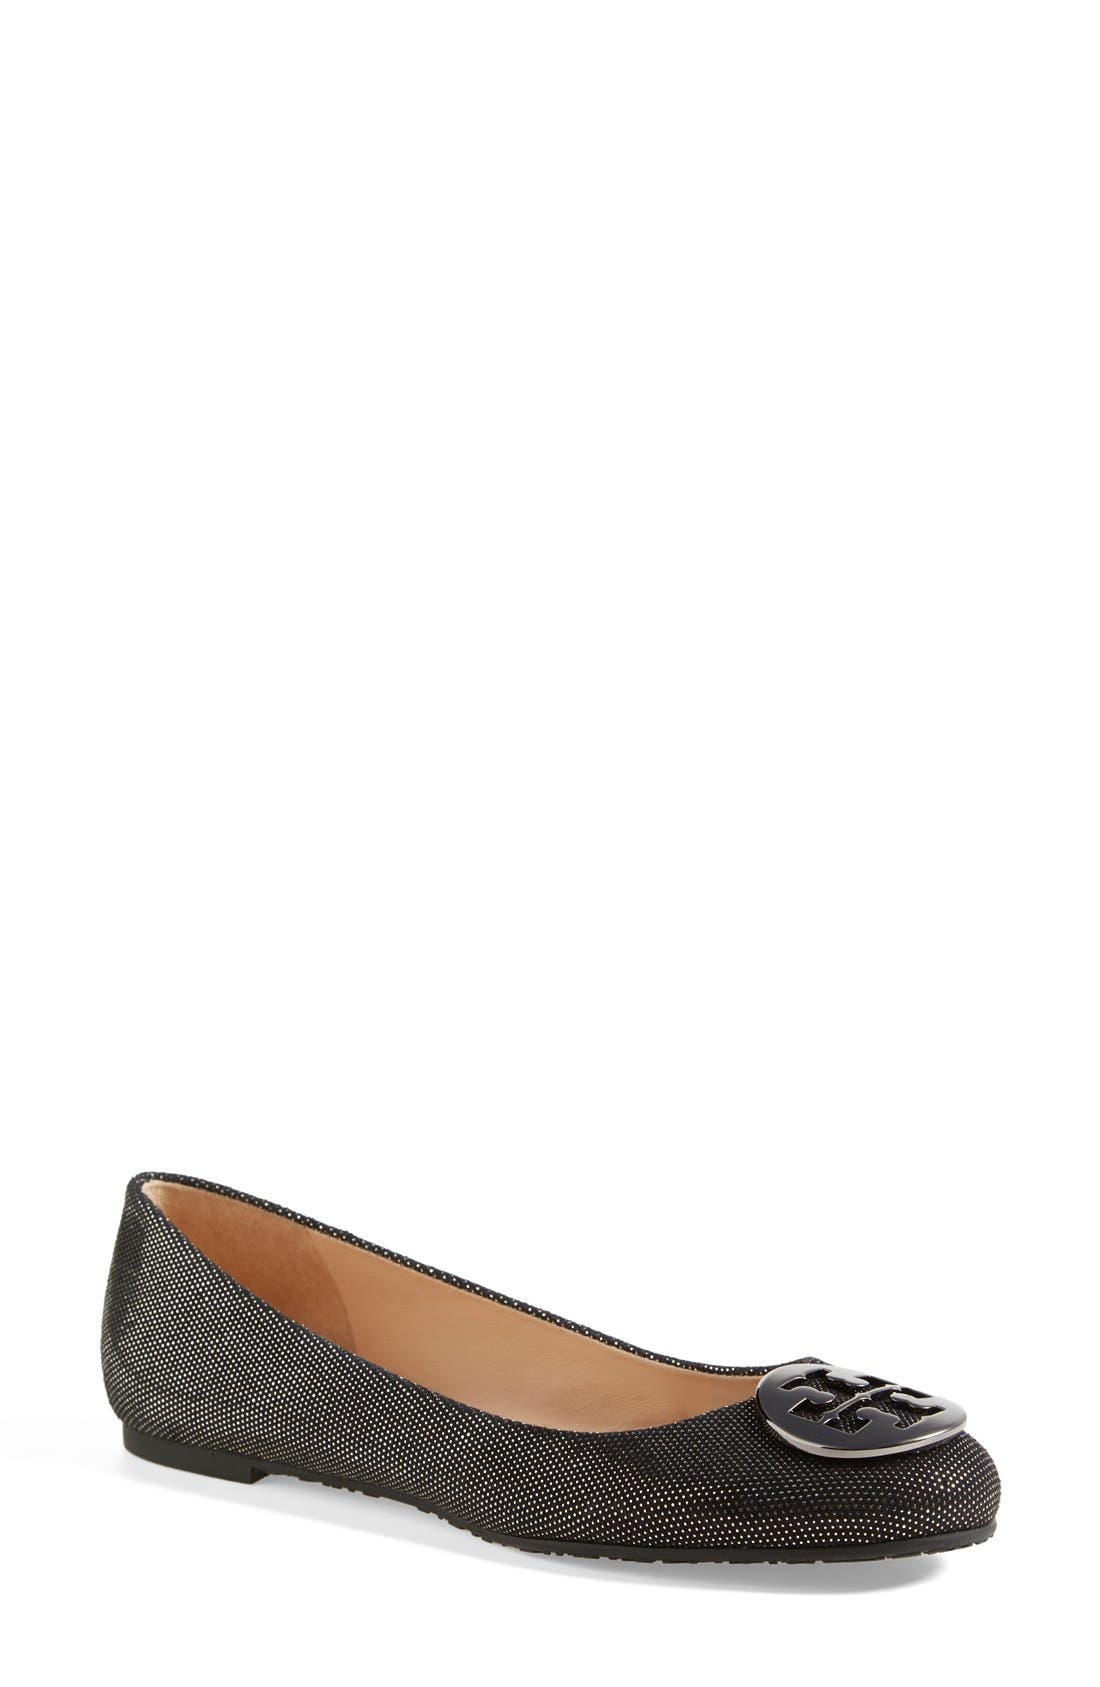 Alternate Image 1 Selected - Tory Burch 'Reva' Metallic Dot Suede Ballet Flat (Women)